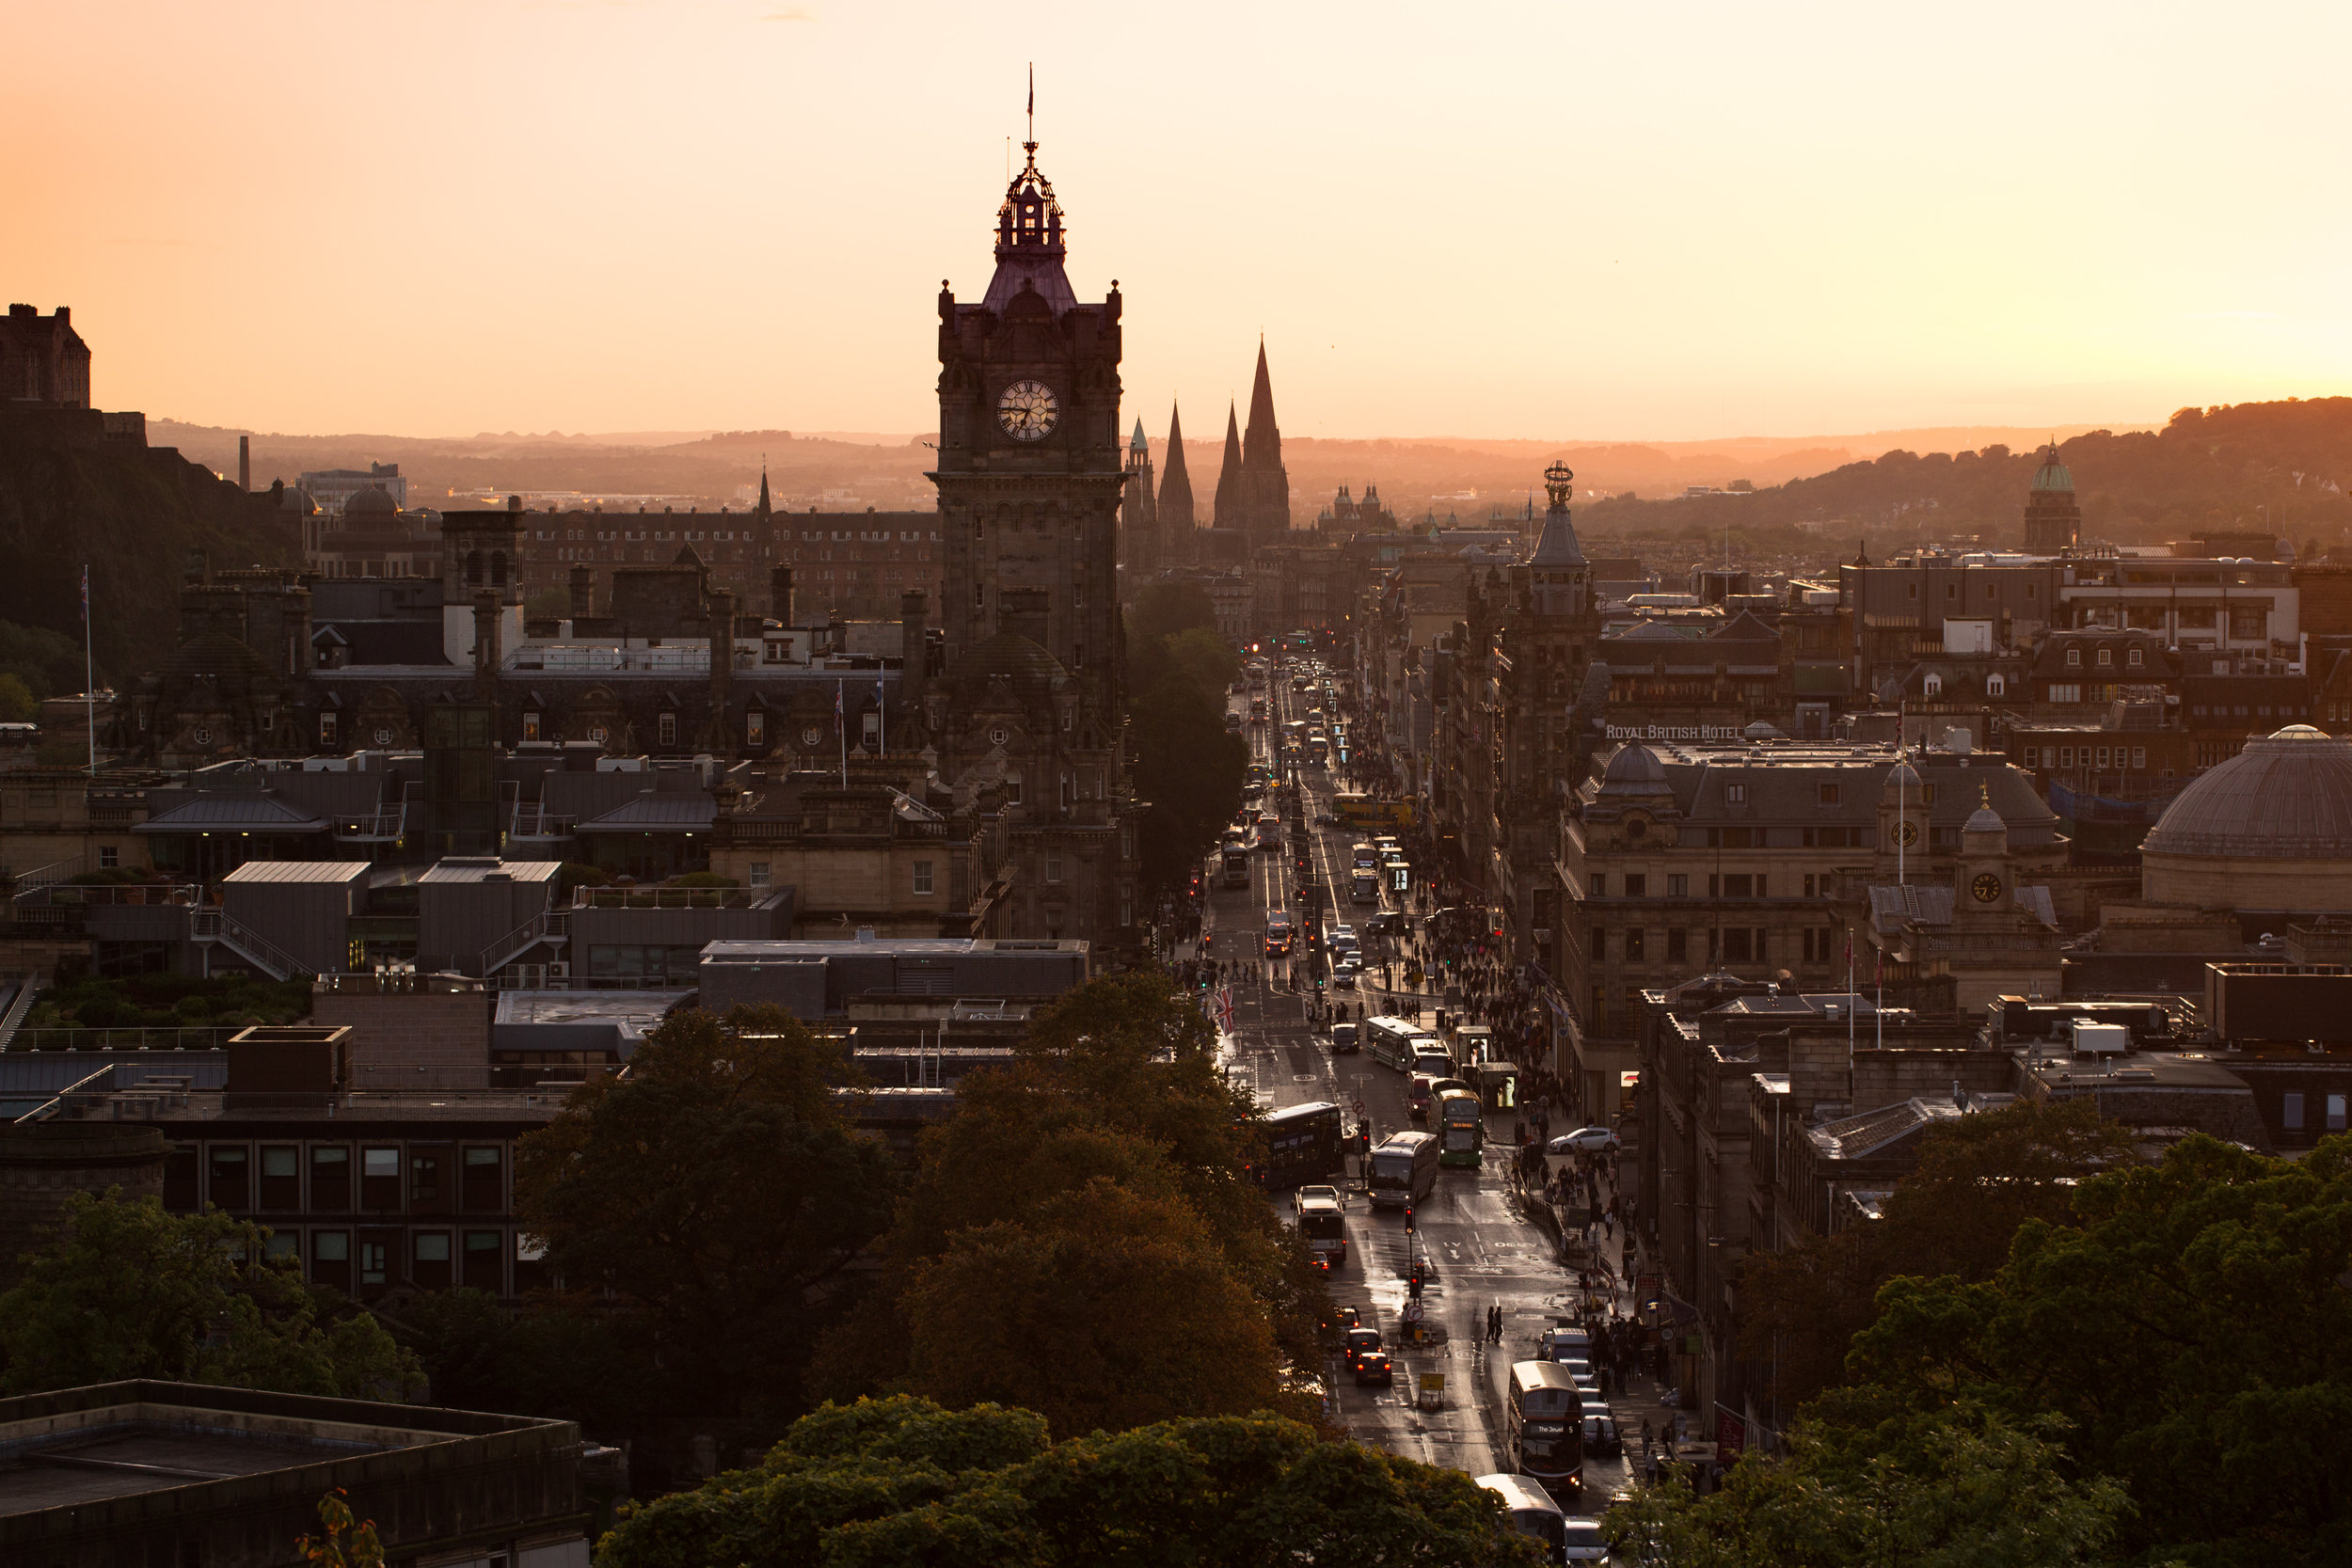 Edinburgh Sunset, Scotland